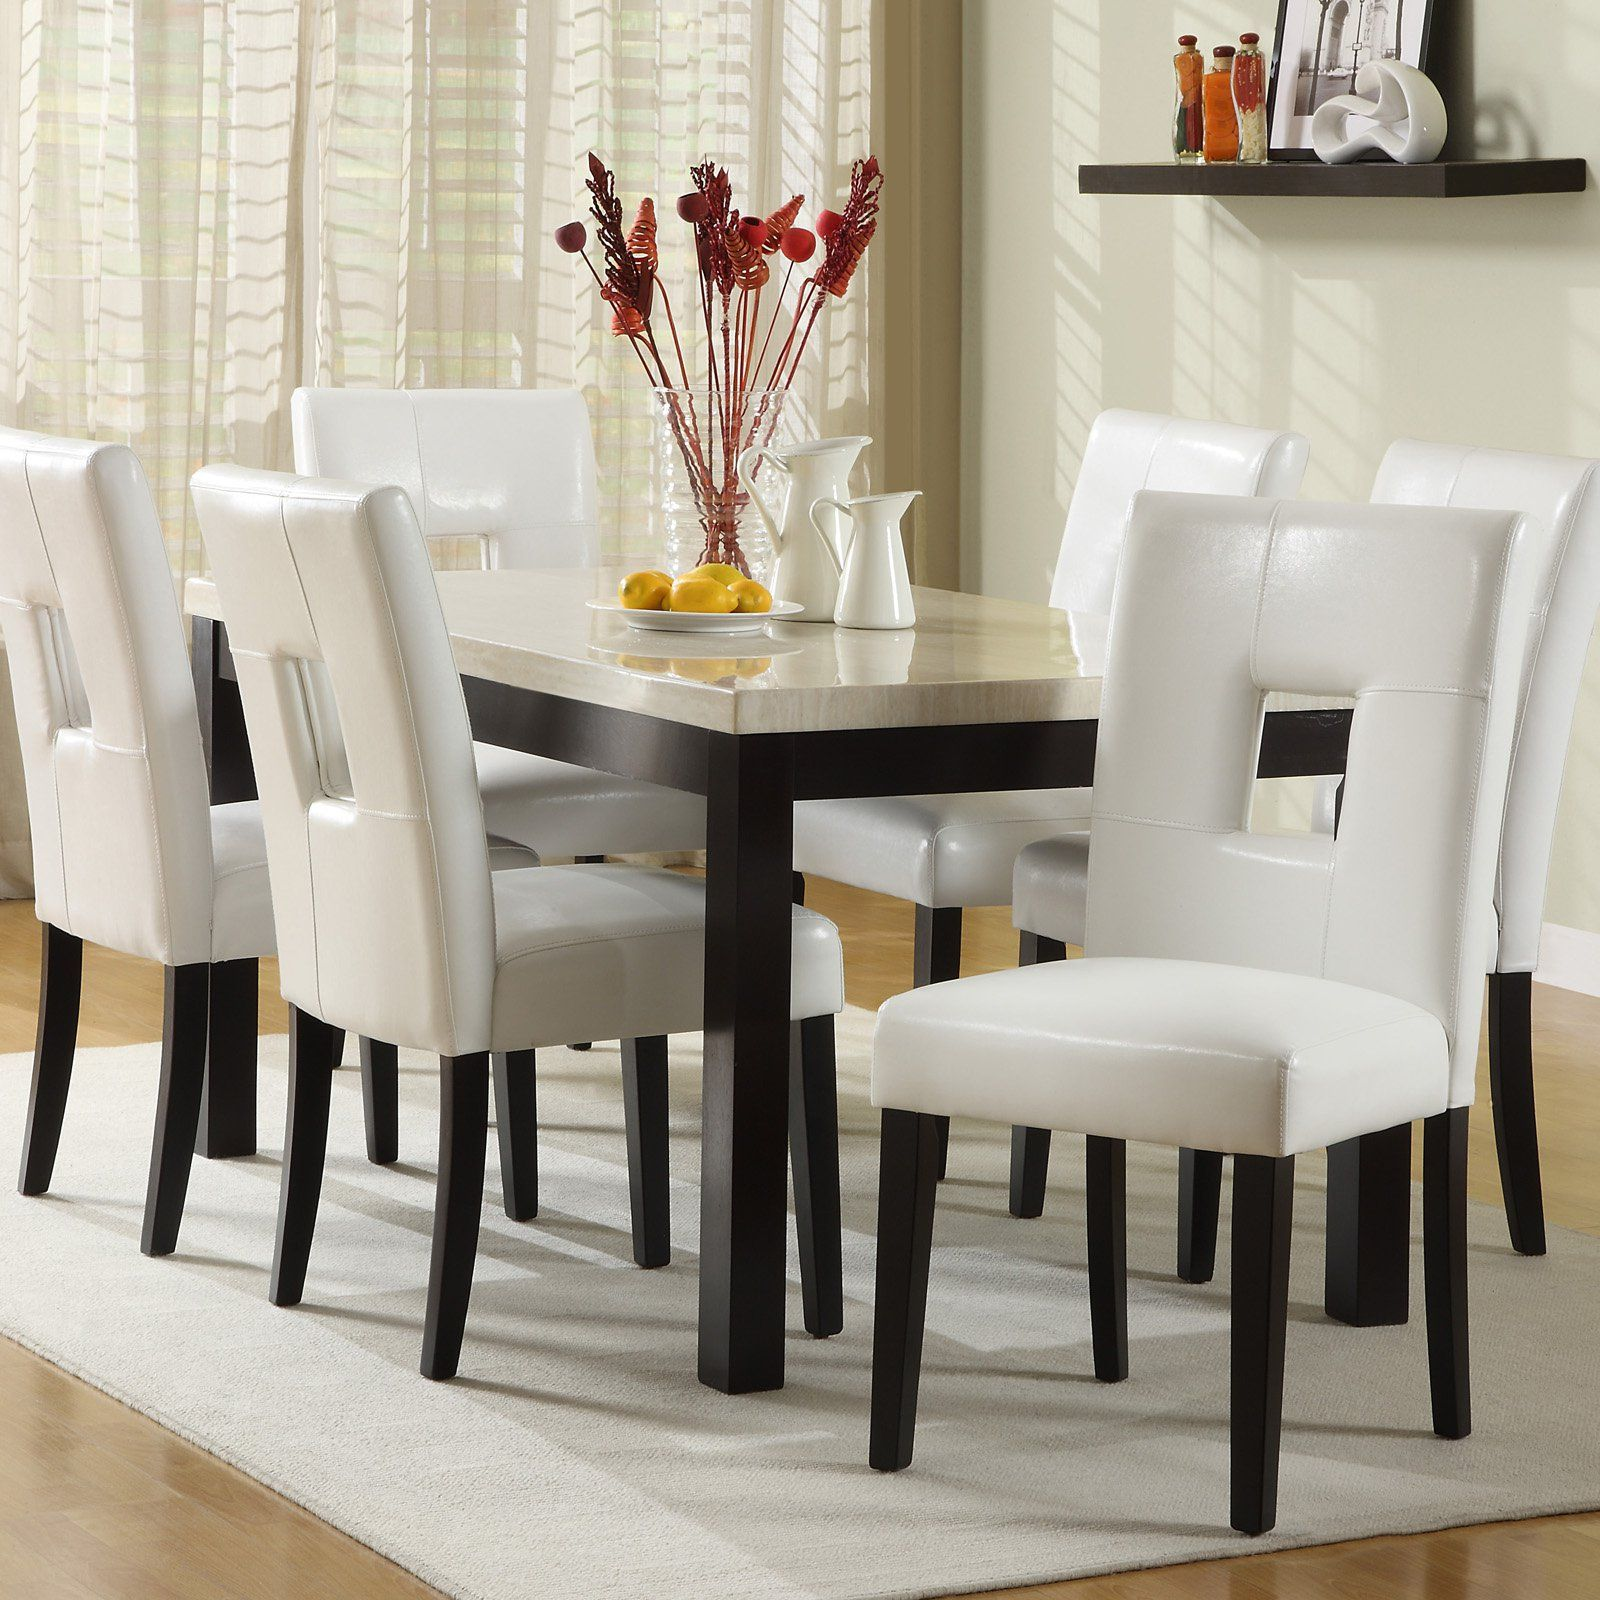 Homelegance Archibald 7 piece White Dining Set 60 in